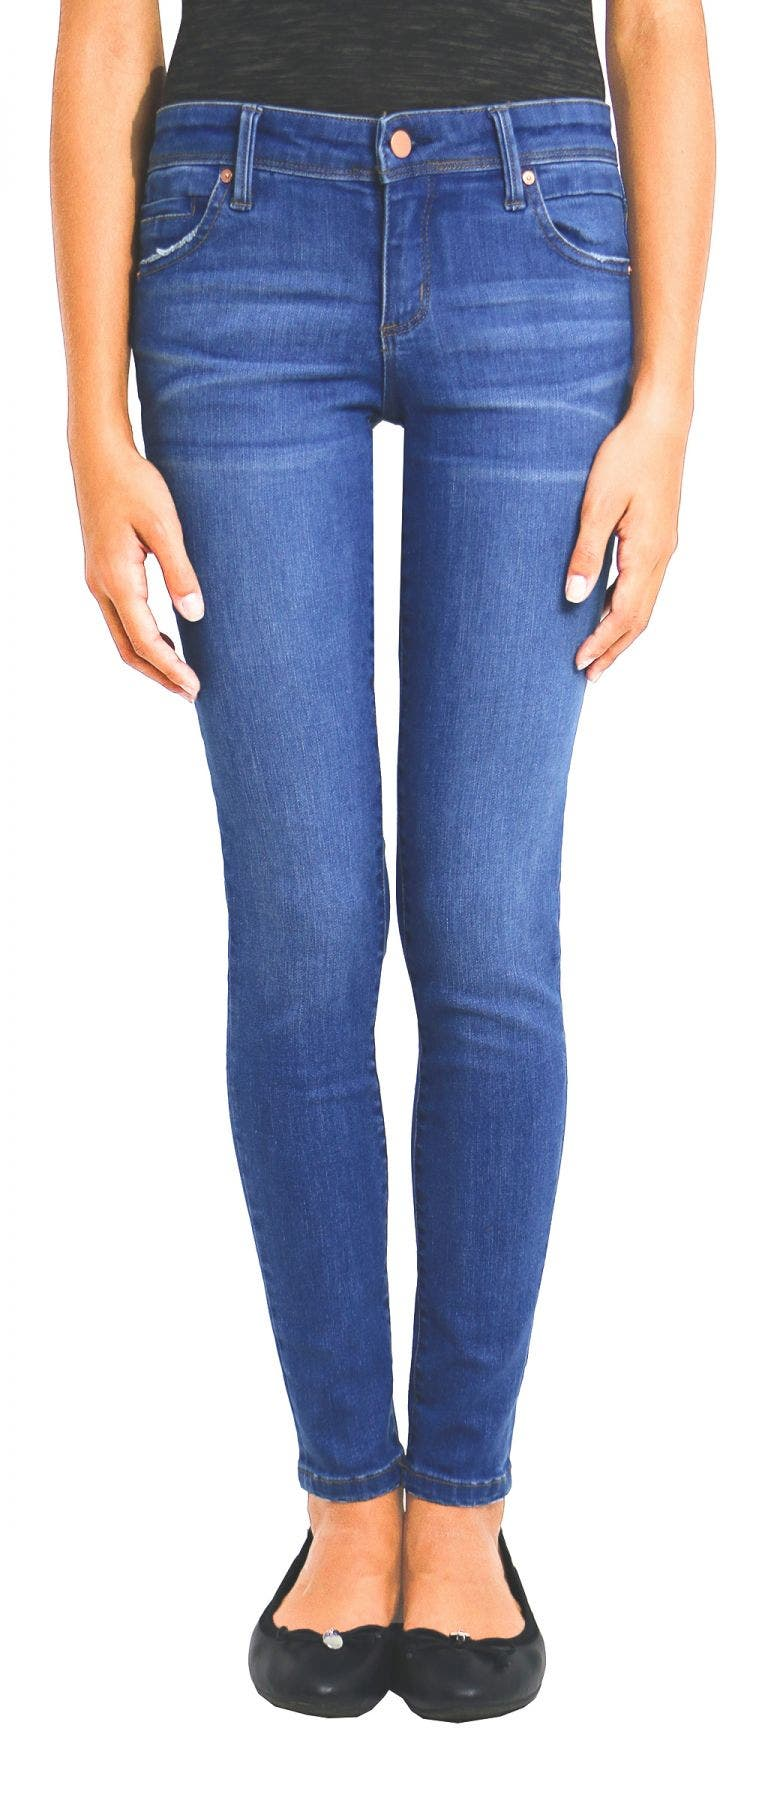 Tractr Girls Medium Wash Skinny Jeans